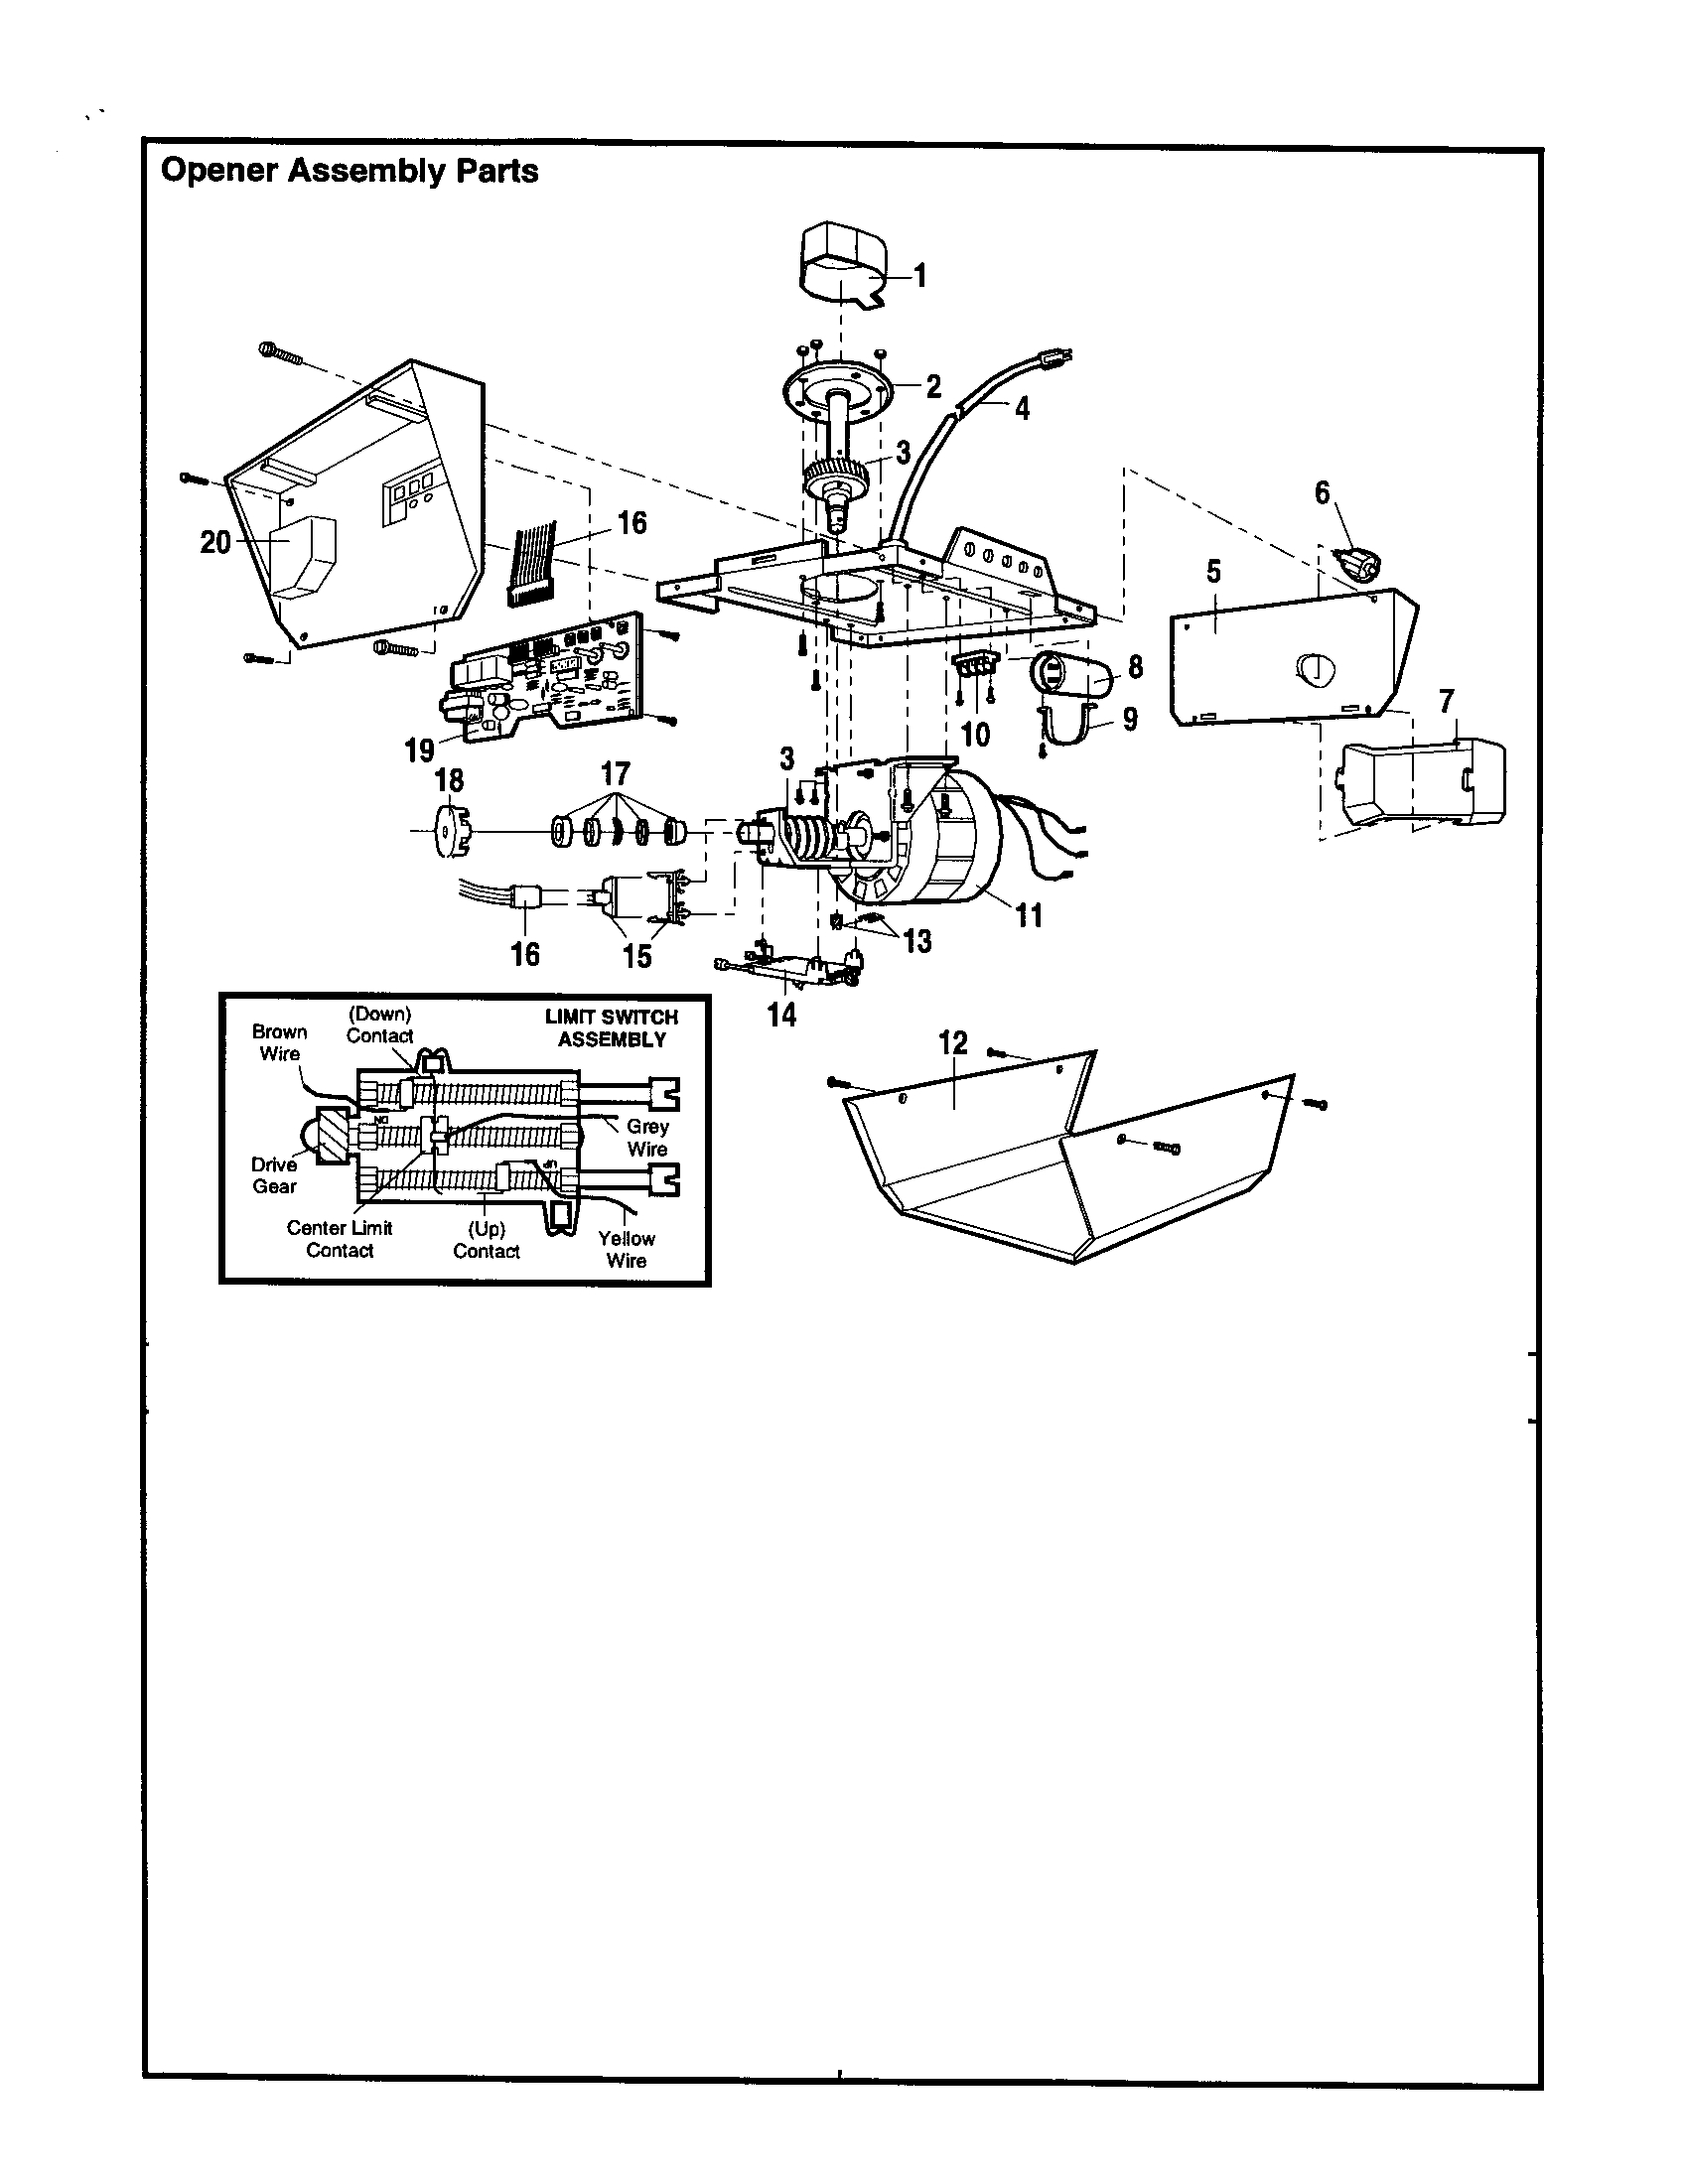 wiring diagram for craftsman garage door opener craftsman garage door opener parts diagram